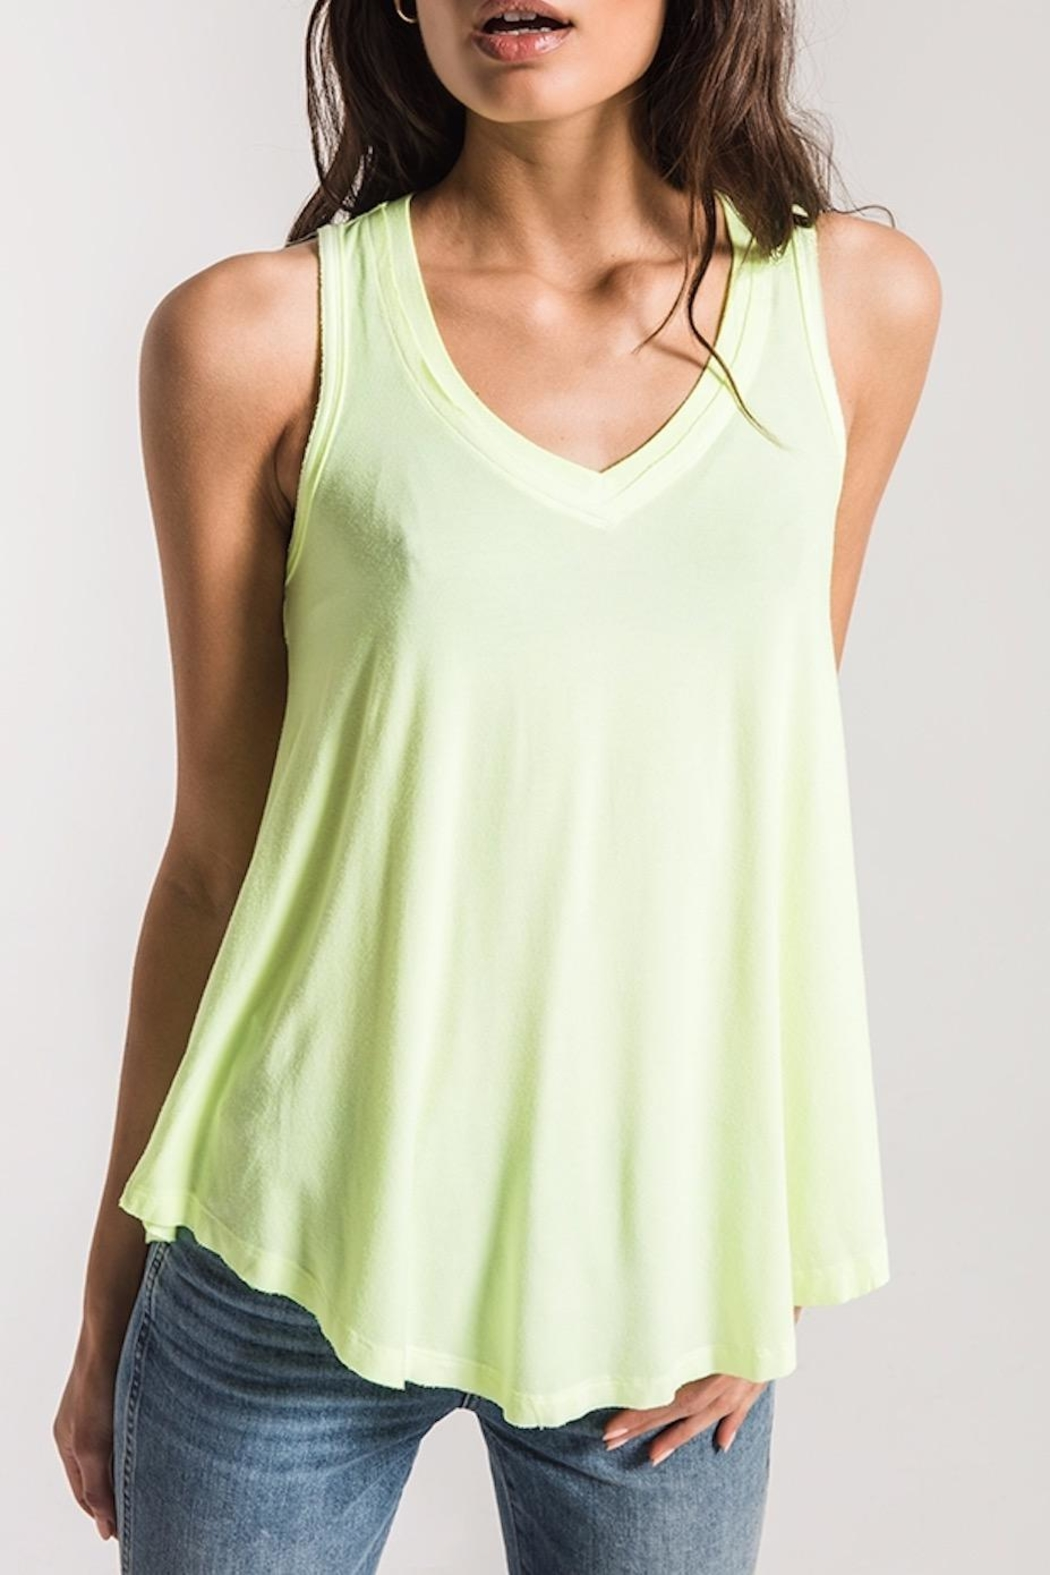 z supply Neon Lime Tank - Side Cropped Image